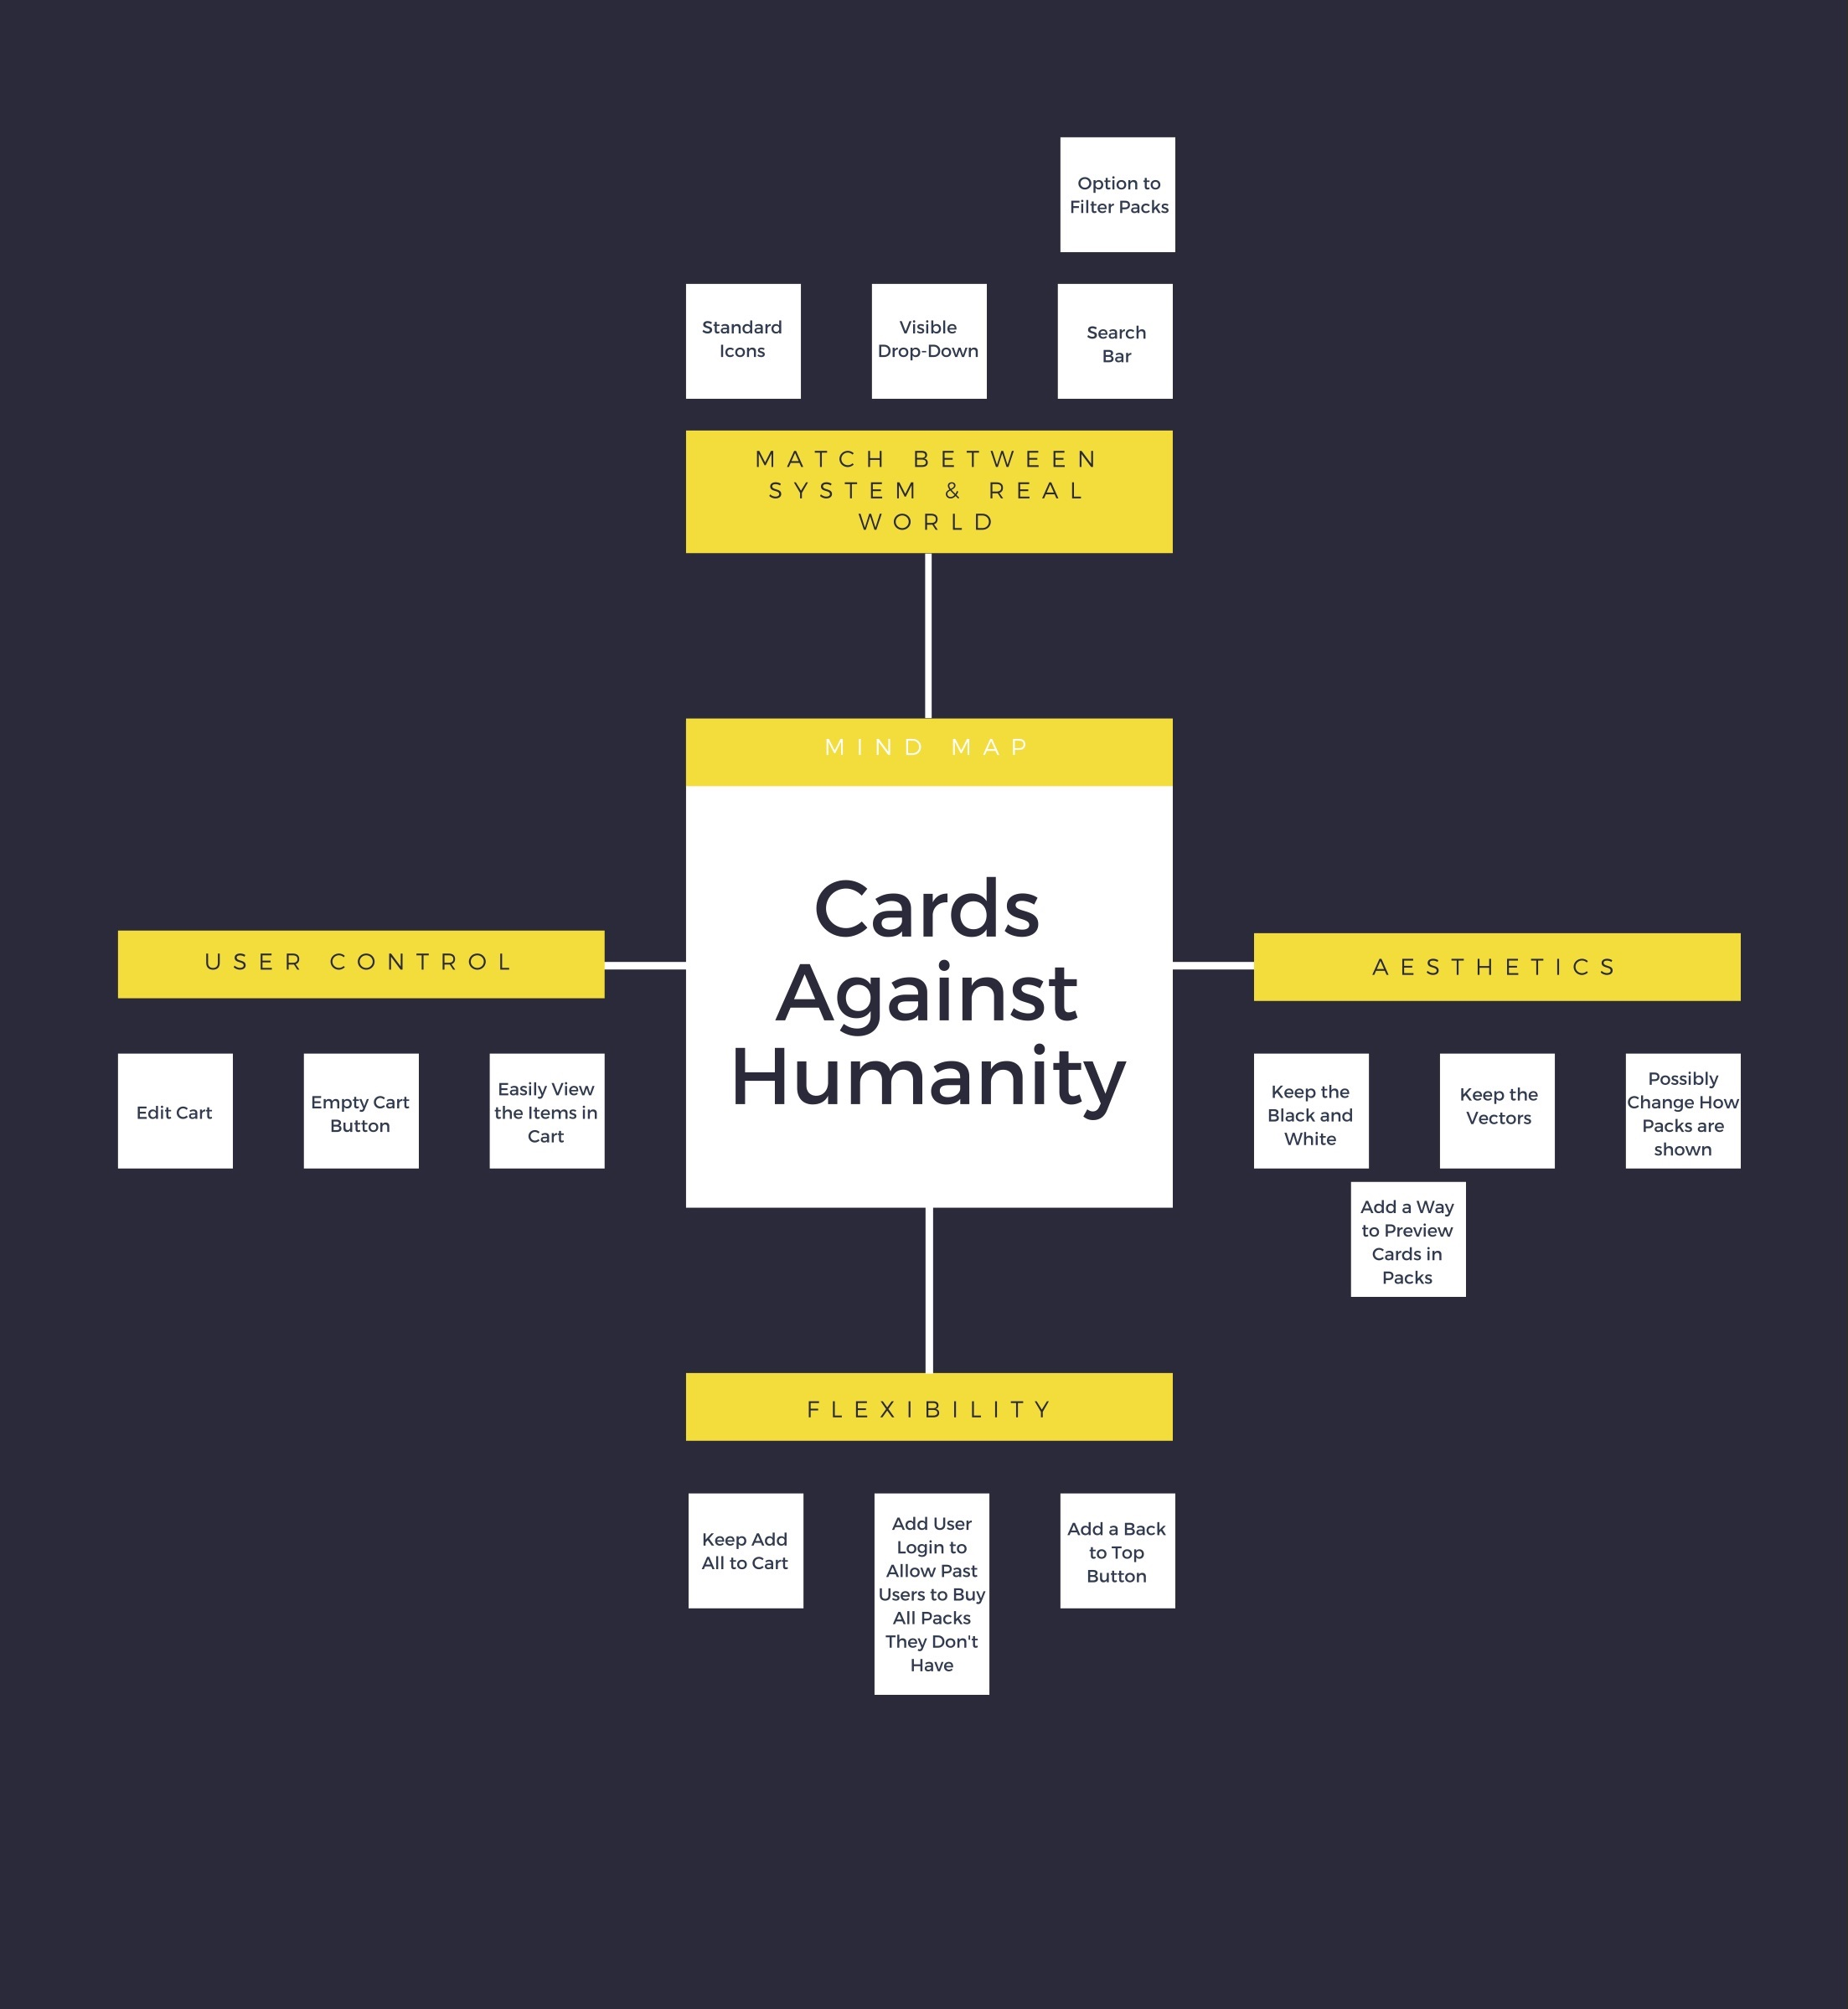 For this mind map I am brainstorming off of the Heuristic Evaluation. For myself personally I find this a good way to start and organize my thoughts and ideas of ways to fix the Cards Against Humanity online store.